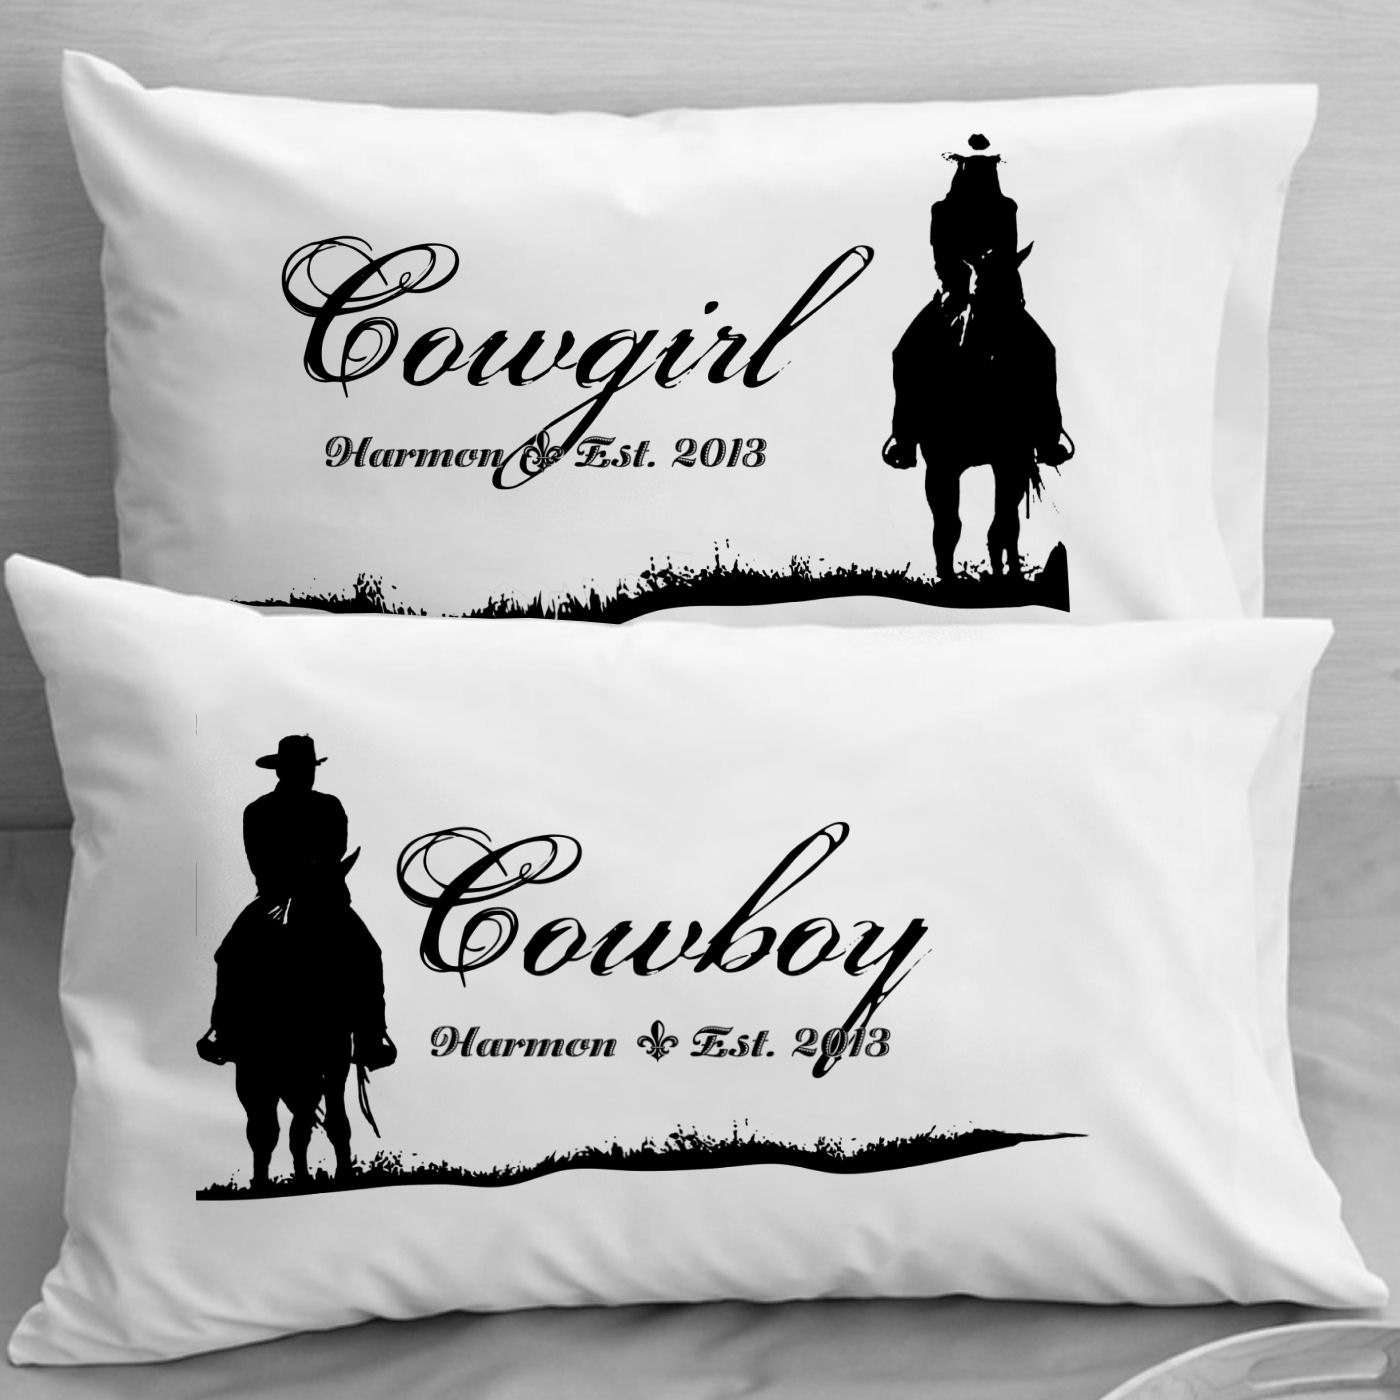 Personalized Cowboy Cowgirl Pillow Cases Pillowcases Wife